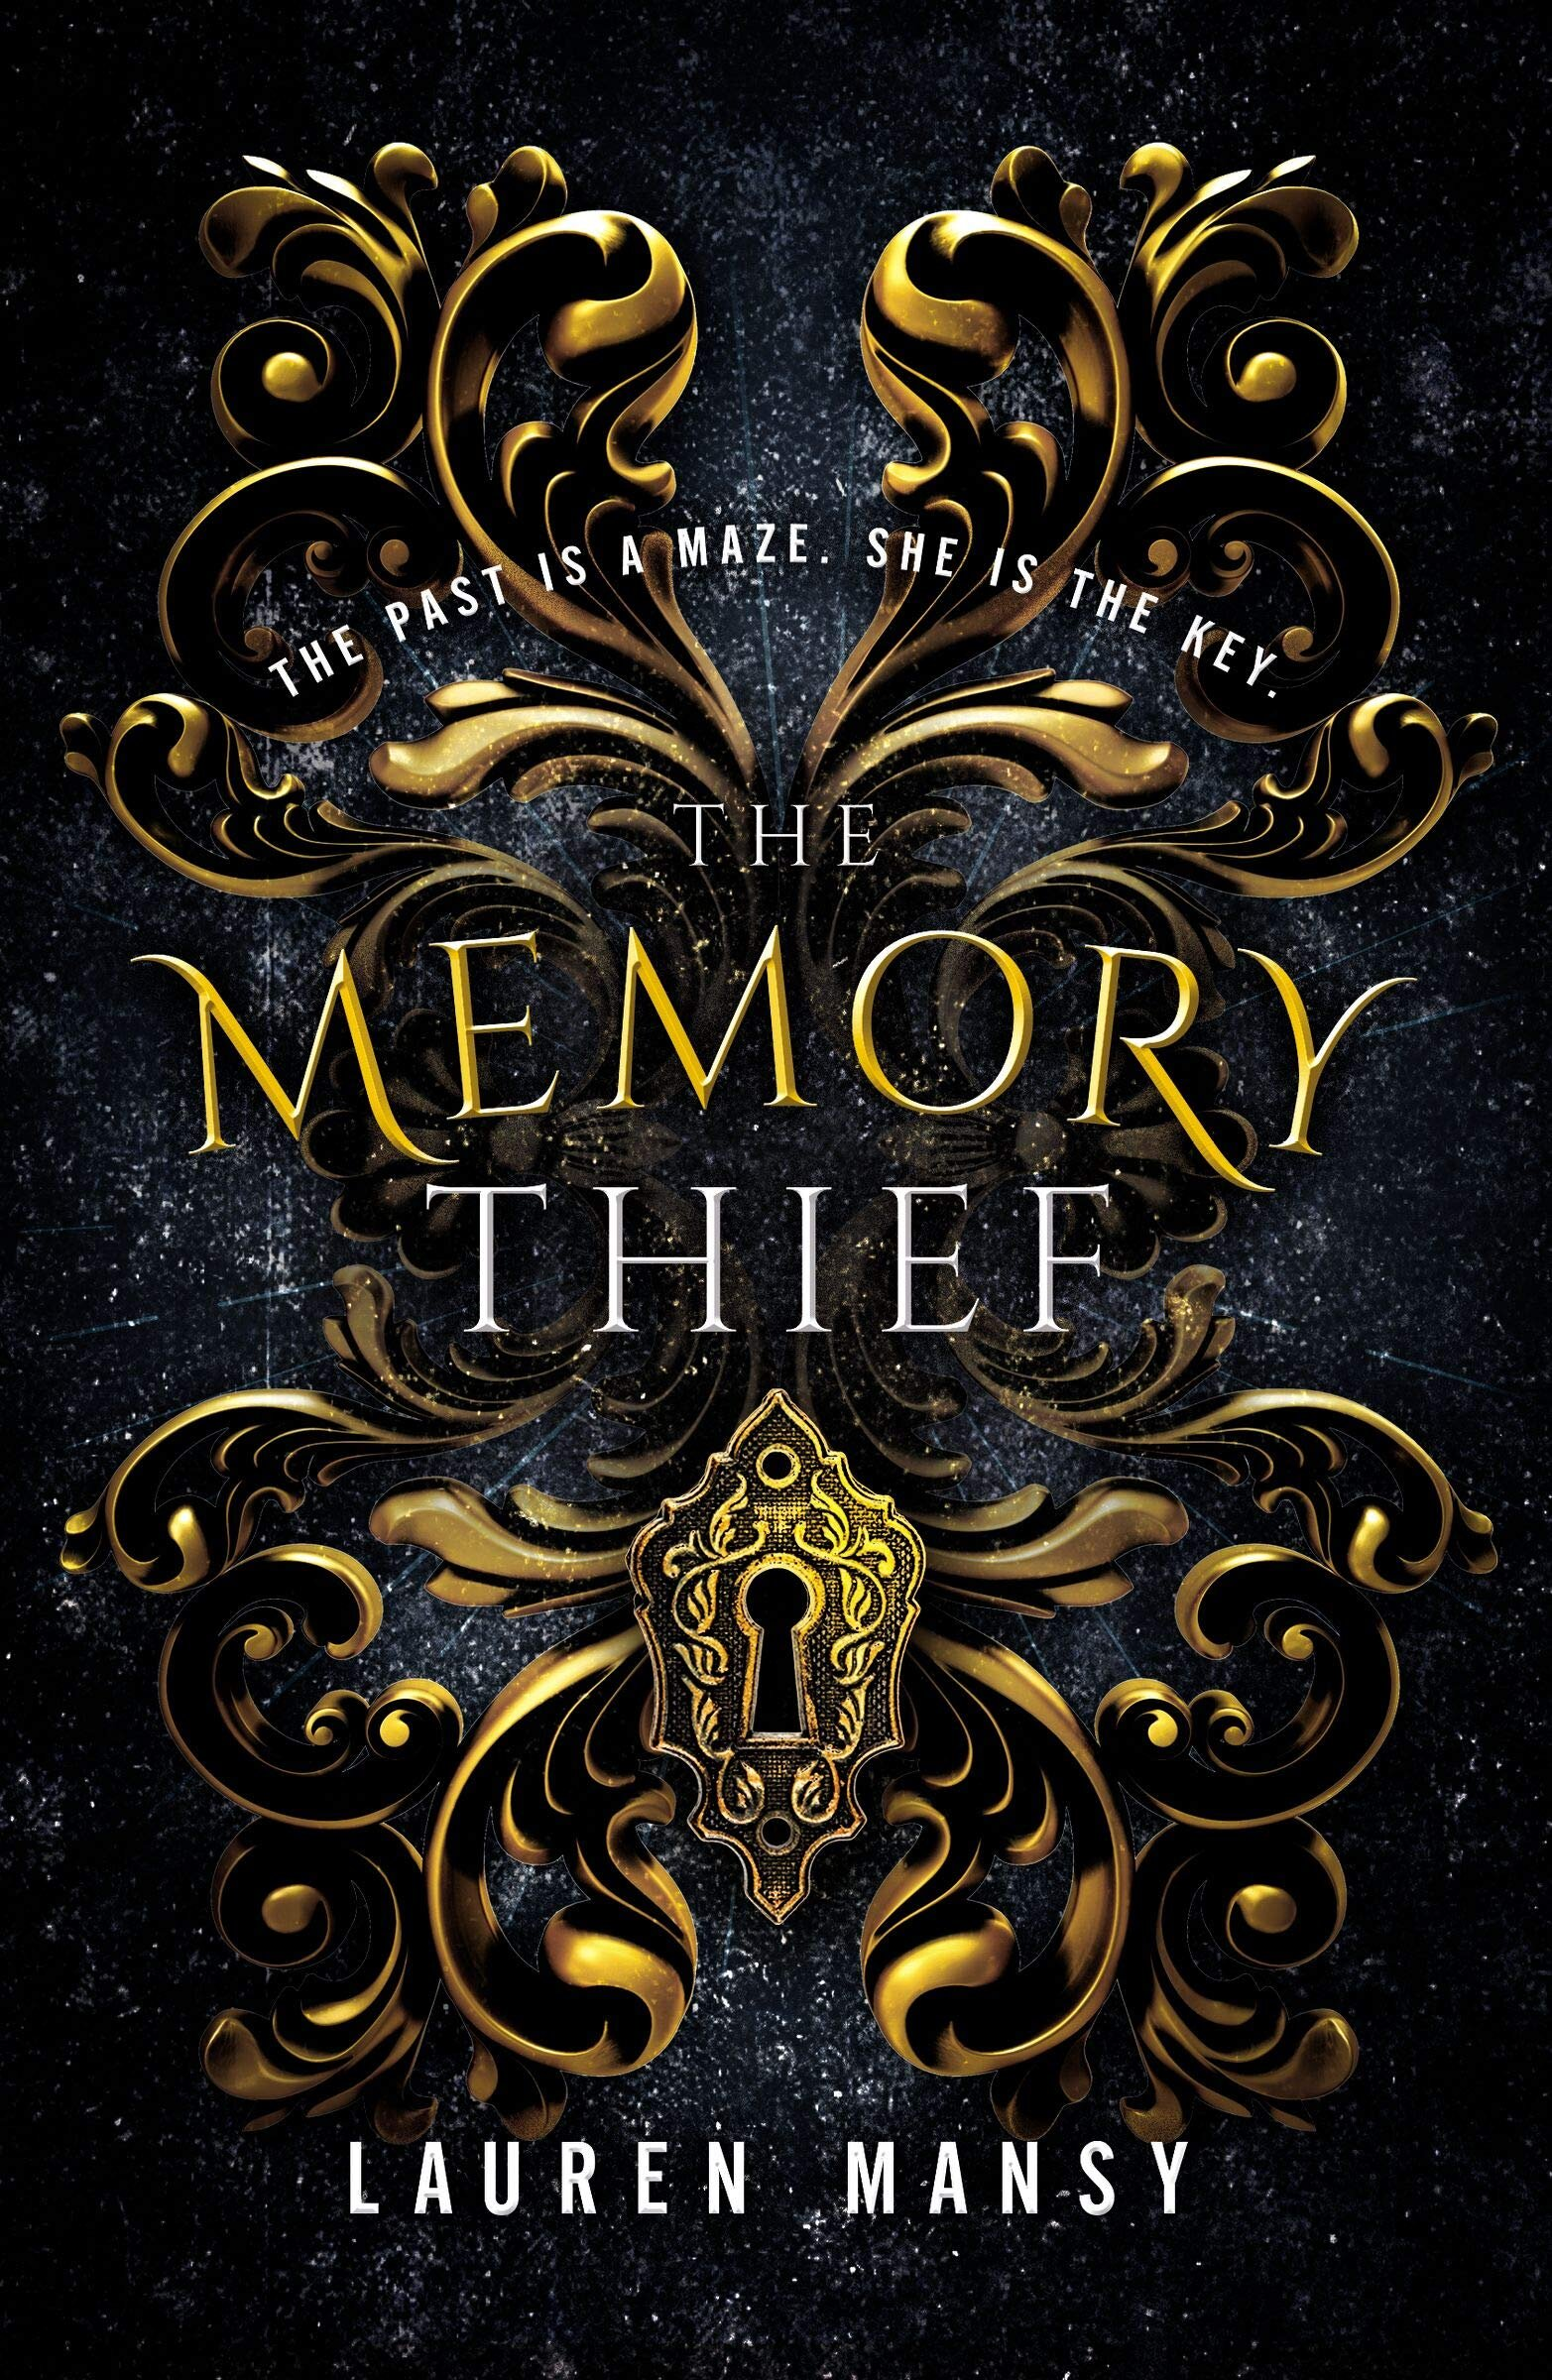 The Memory Thief New Release By Lauren Mansy